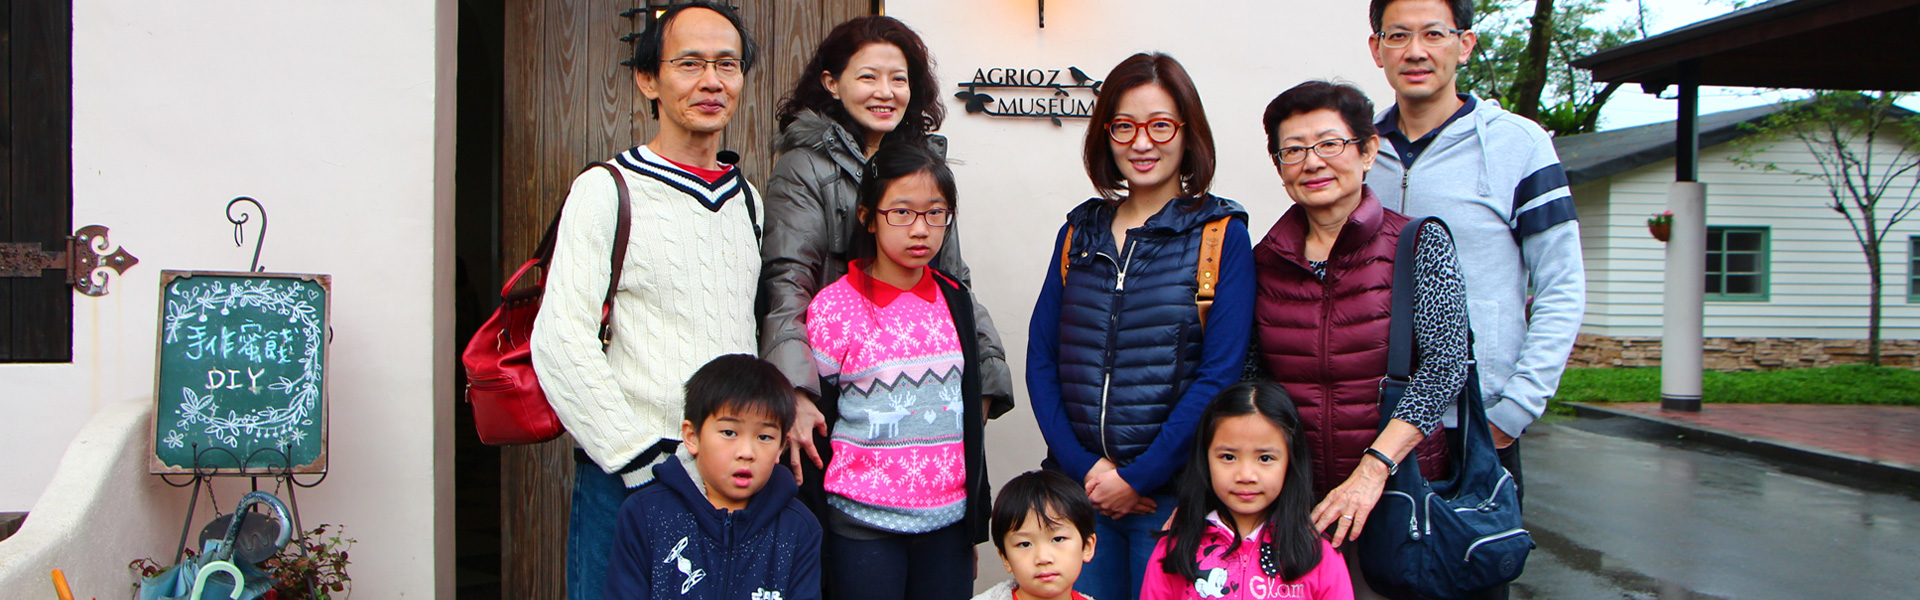 Taiwan Customized Tours multi generational